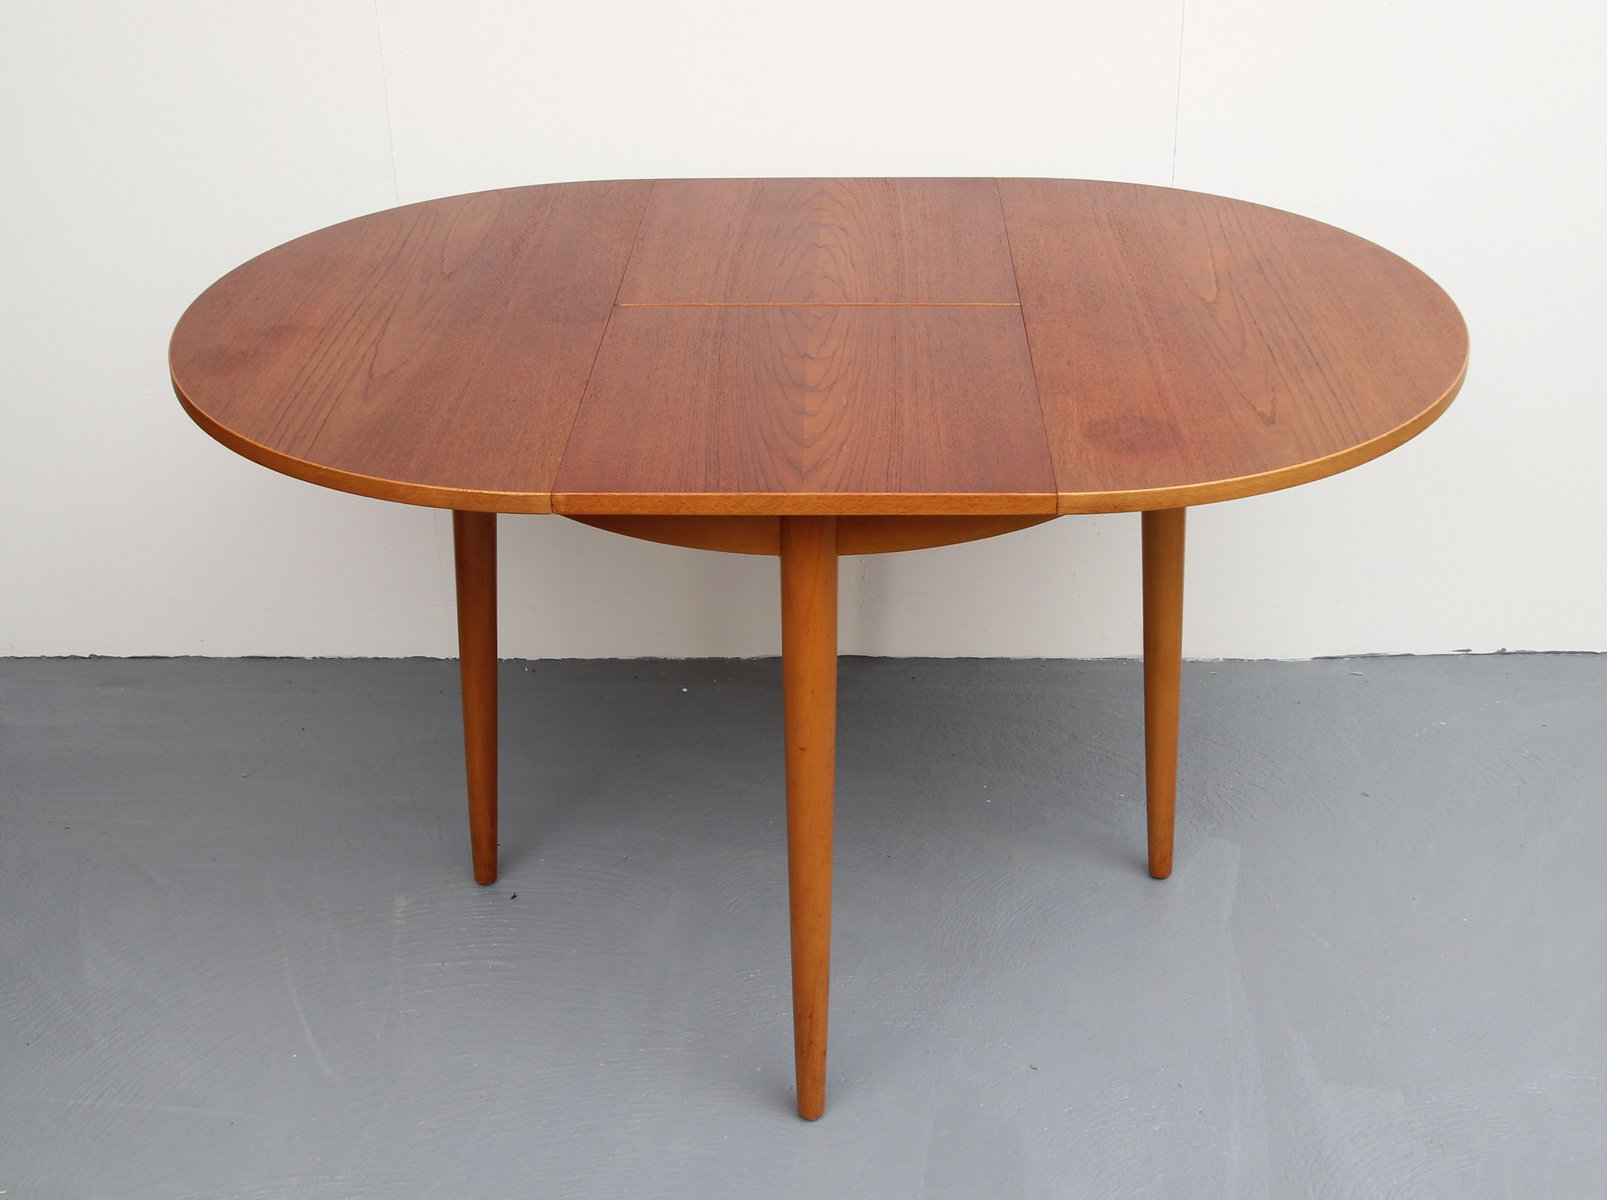 Small Vintage Dining Table From L Bke For Sale At Pamono